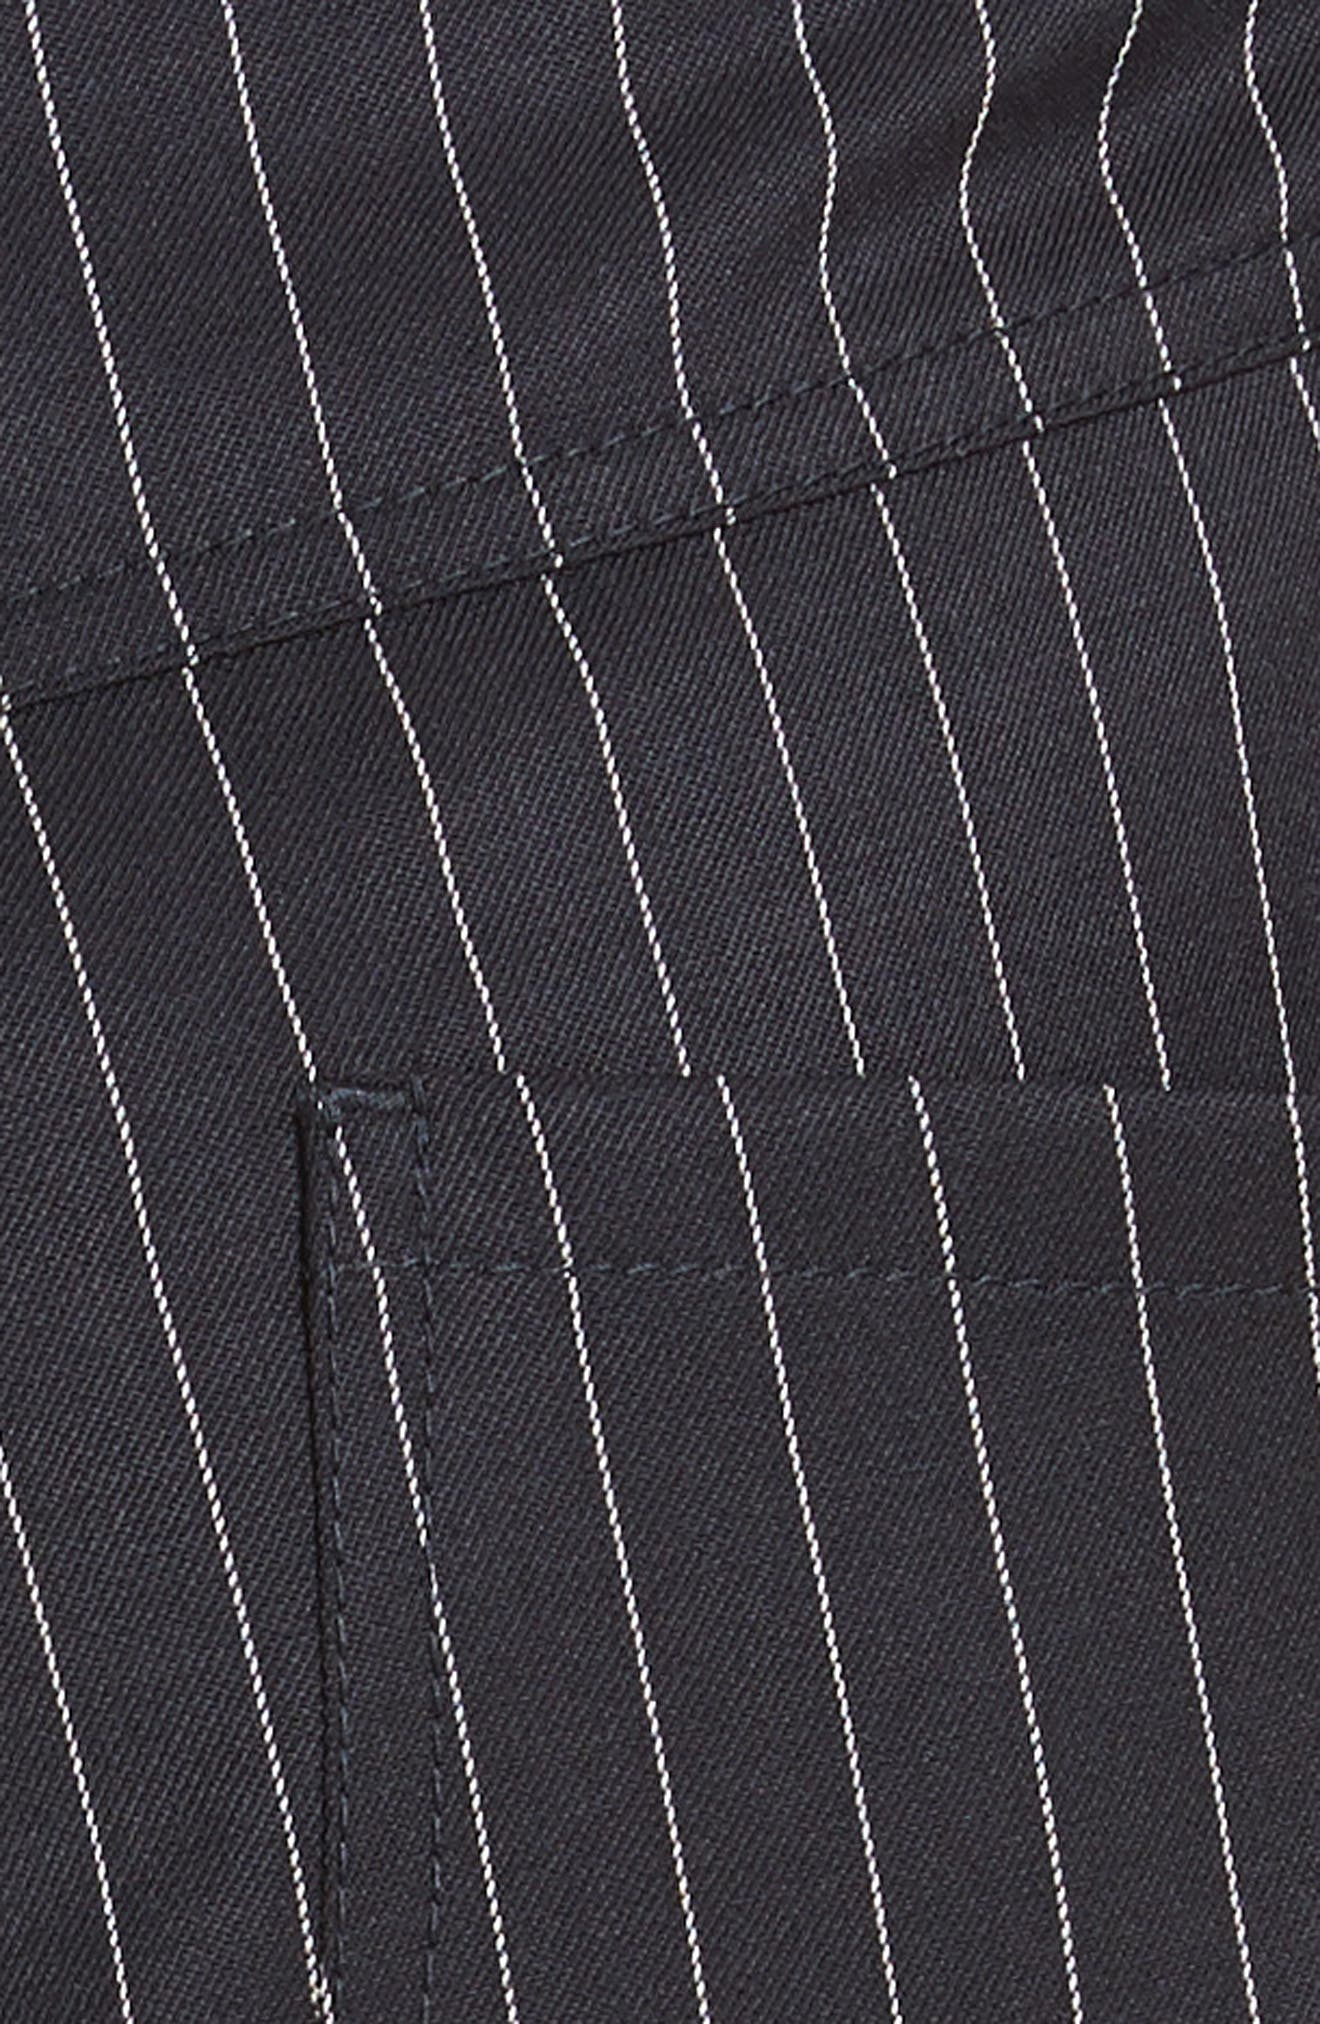 Ruched Pinstripe Trousers,                             Alternate thumbnail 5, color,                             010